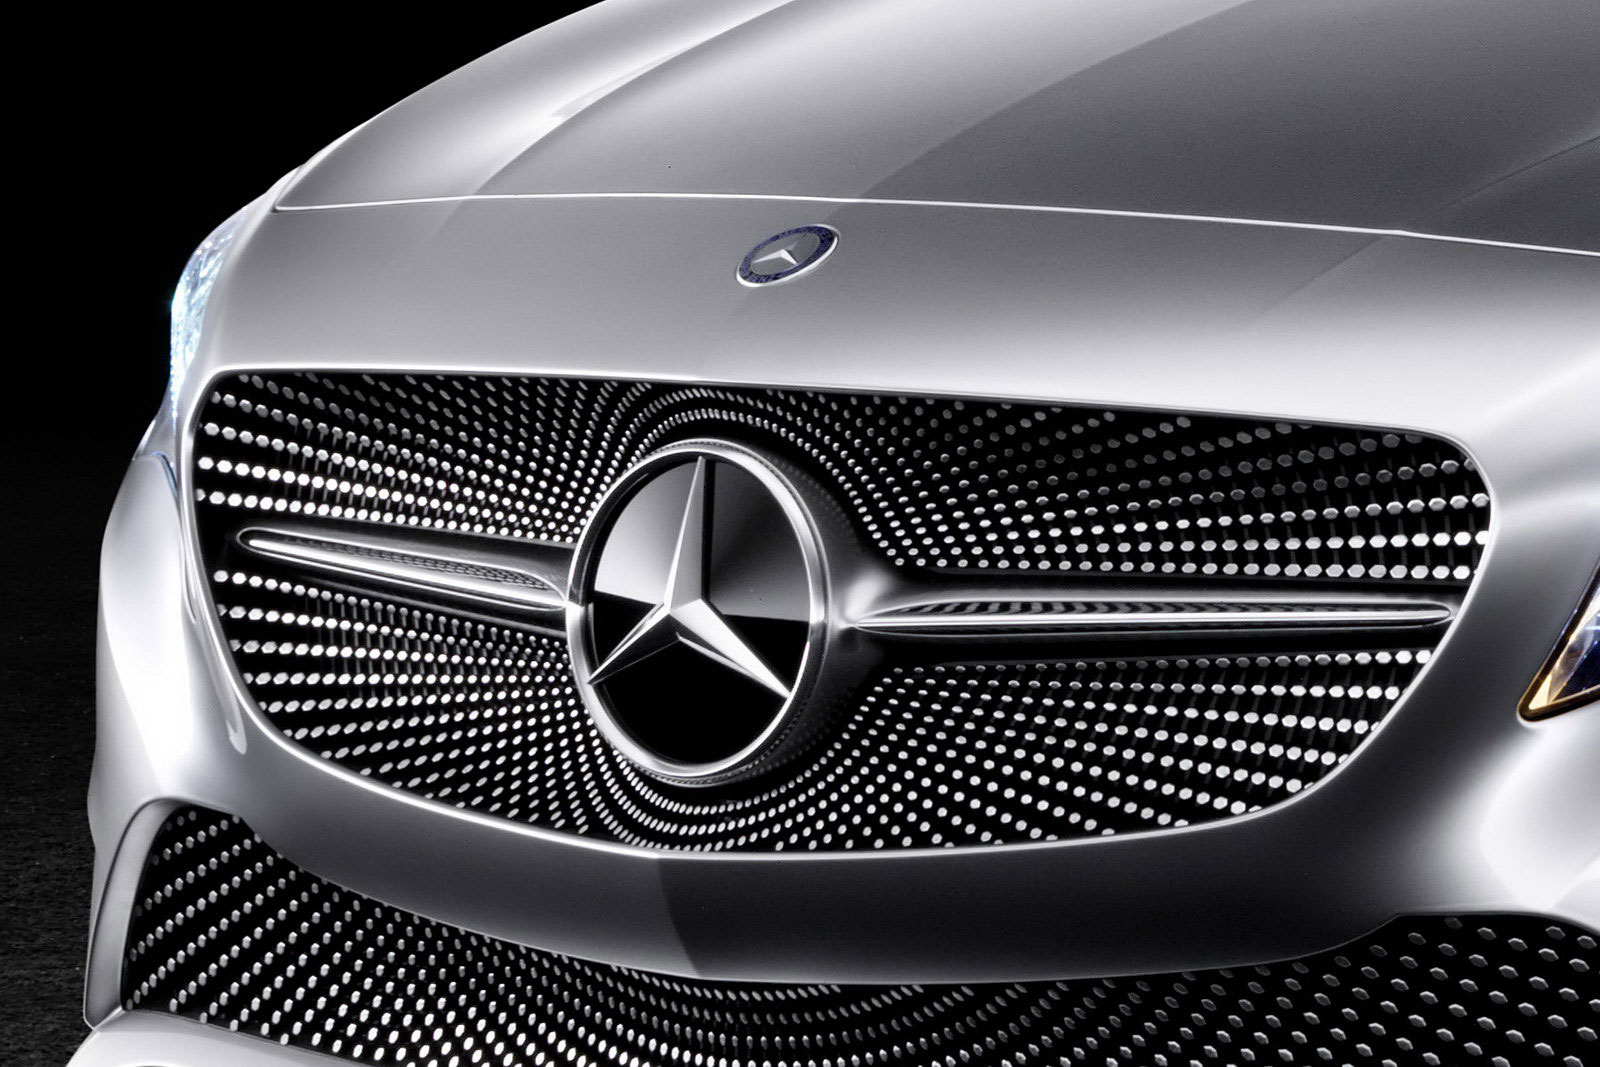 10 Really Bad Luxury Cars That Will Make You Weep: 10 Best Top Rated Mercedes Grill Comparison, Reviews